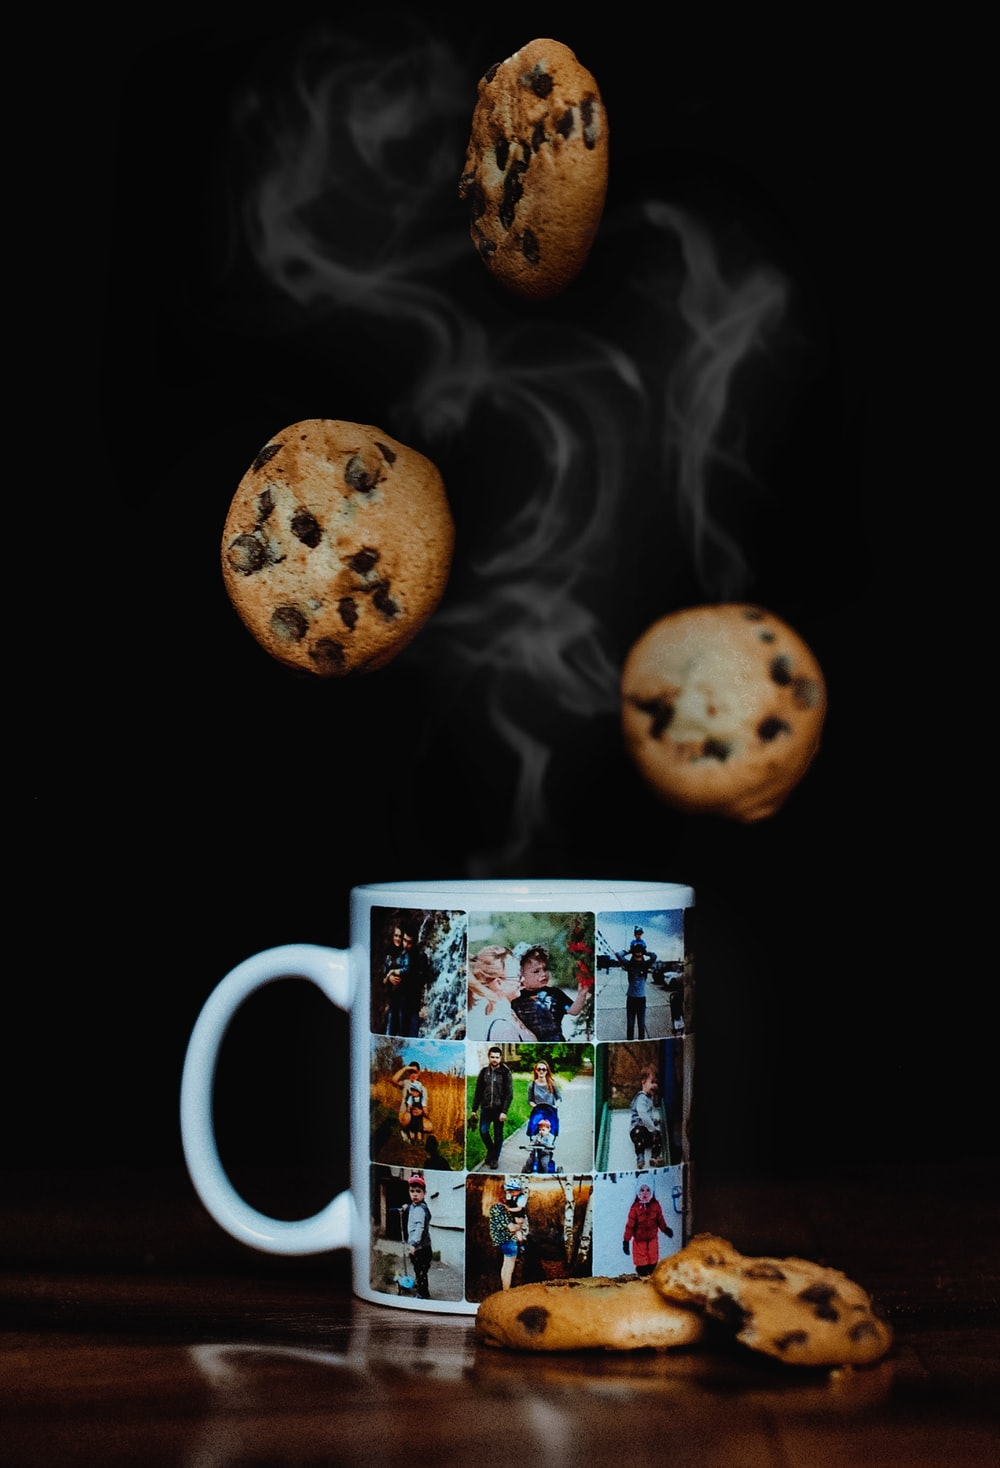 ceramic mug on brown surface with cookies